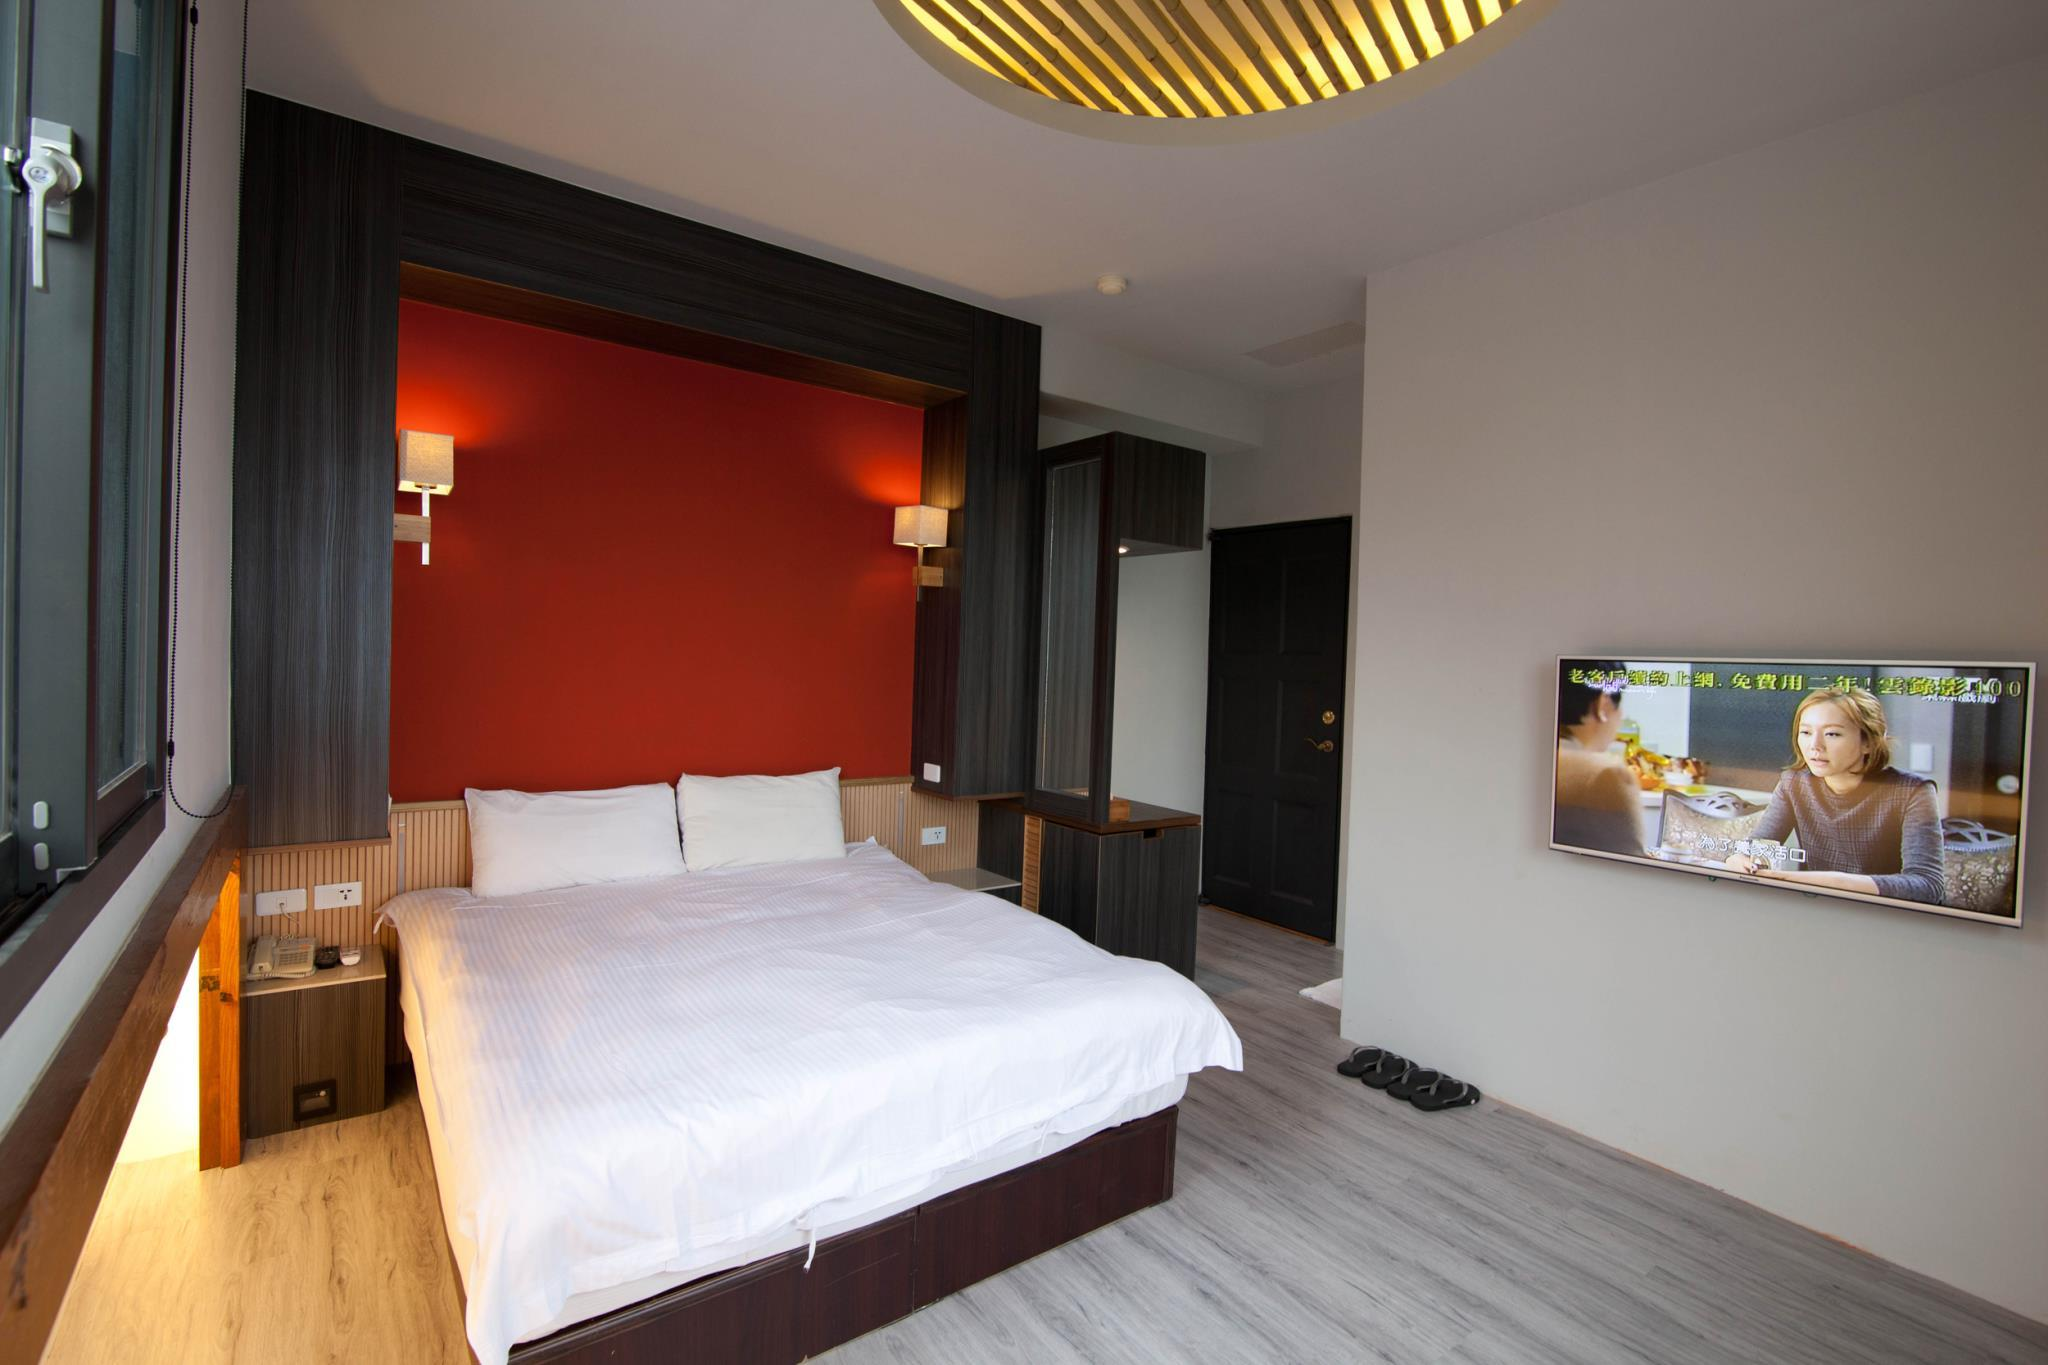 Kamar Basic Double (Basic Double Room)